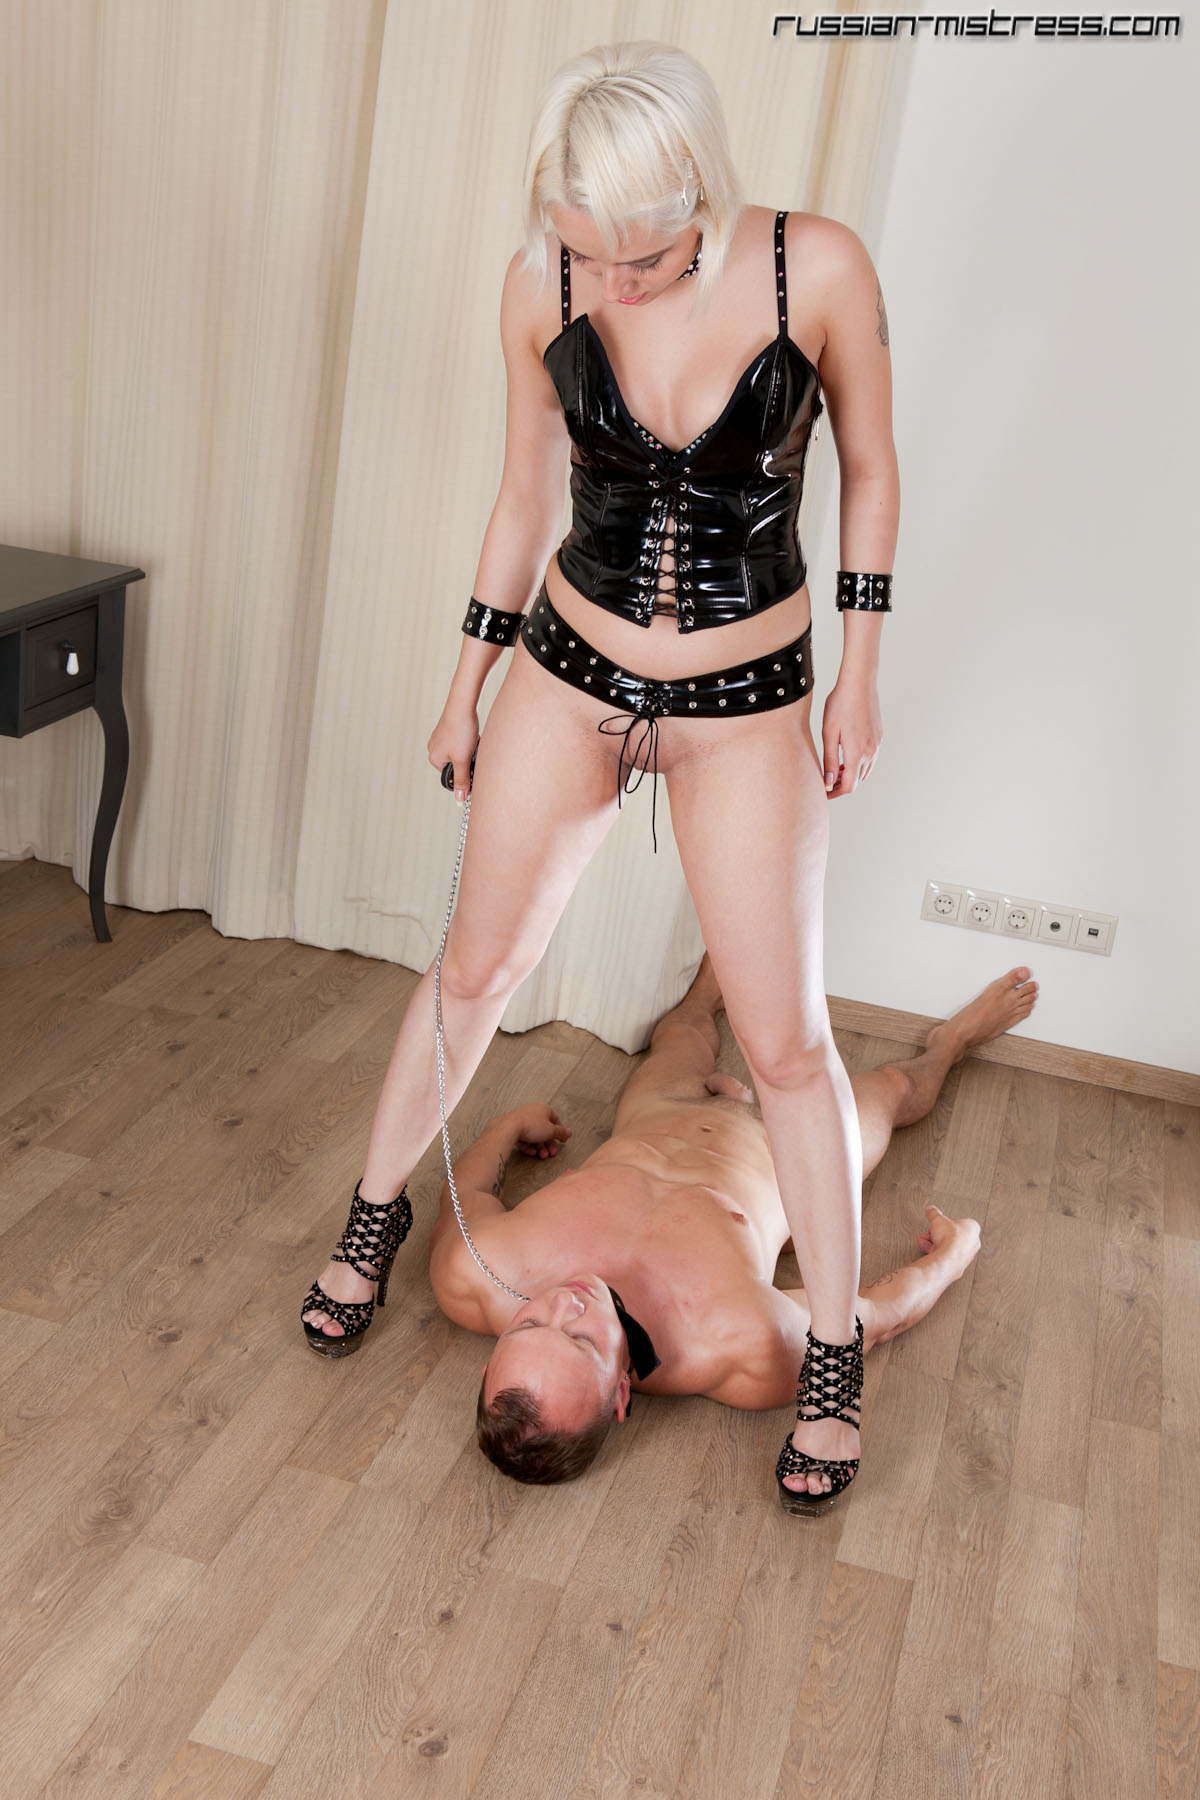 A pathetic wanker getting exposed for his mistress 8